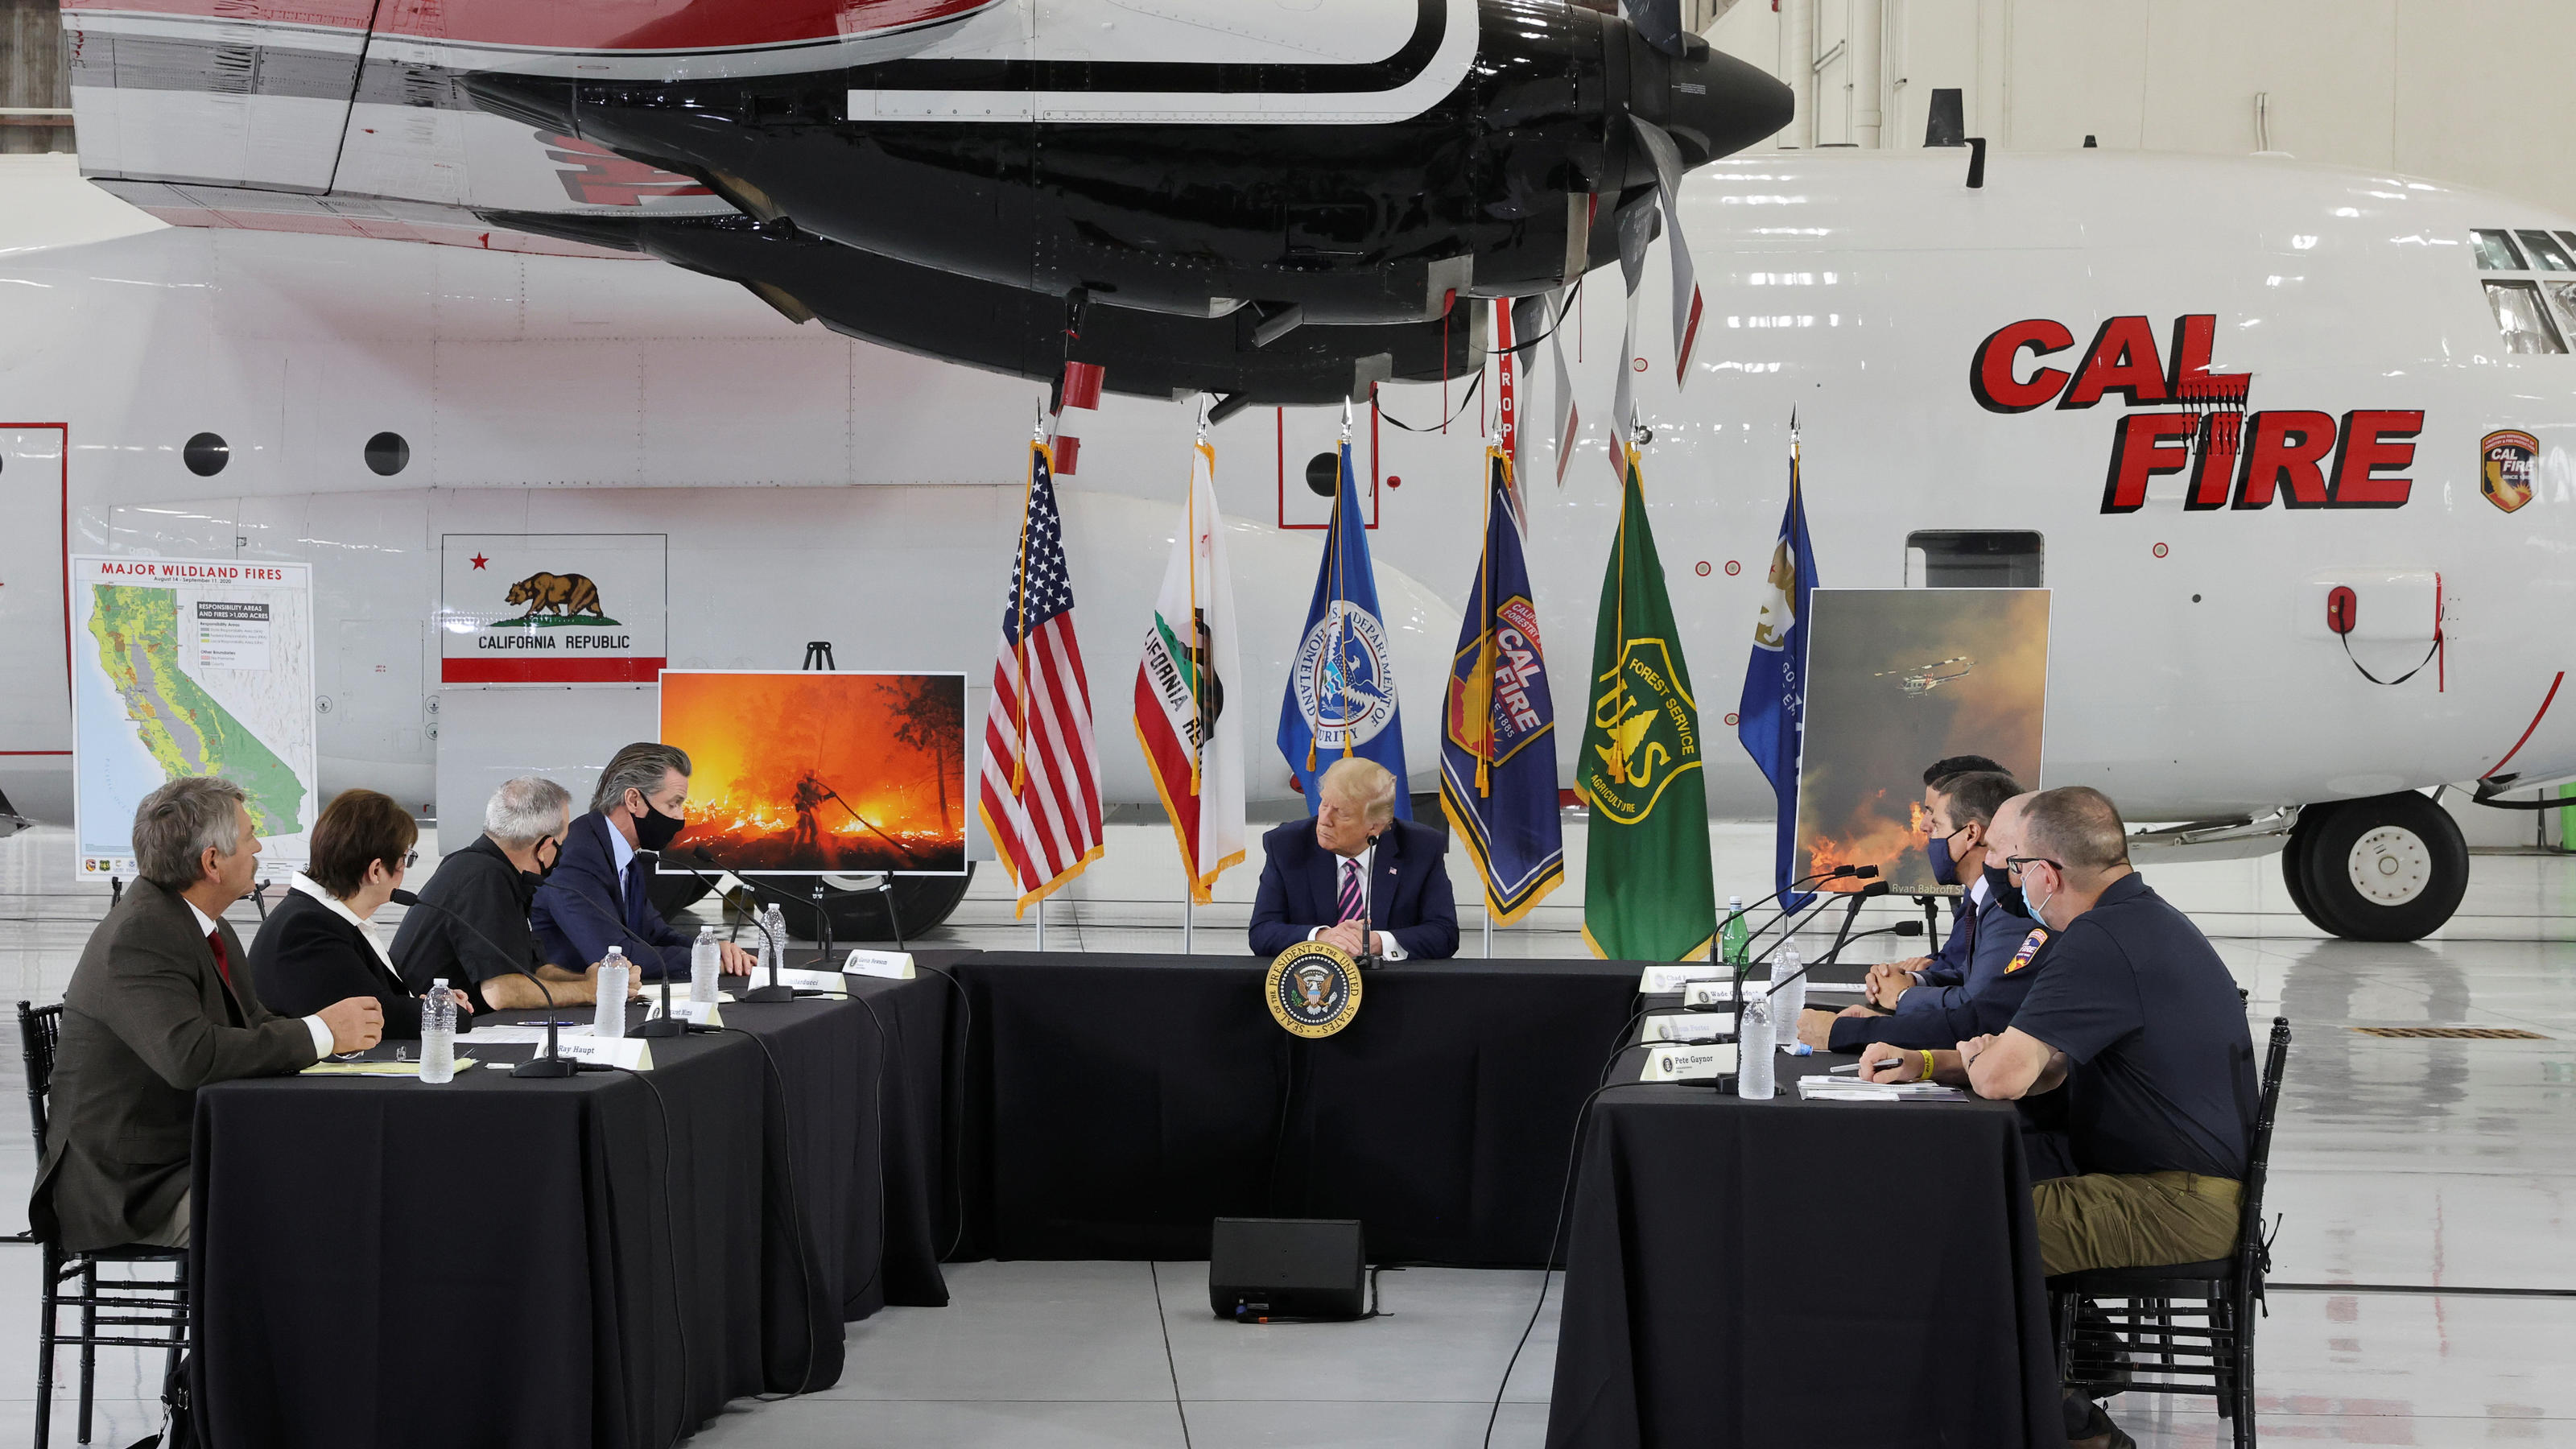 U.S. President Donald Trump sits in front of a CAL FIRE firefighting aircraft as California Governor Gavin Newsom speaks during a briefing on wildfires in McClellan Park, California, U.S., September 14, 2020. REUTERS/Jonathan Ernst